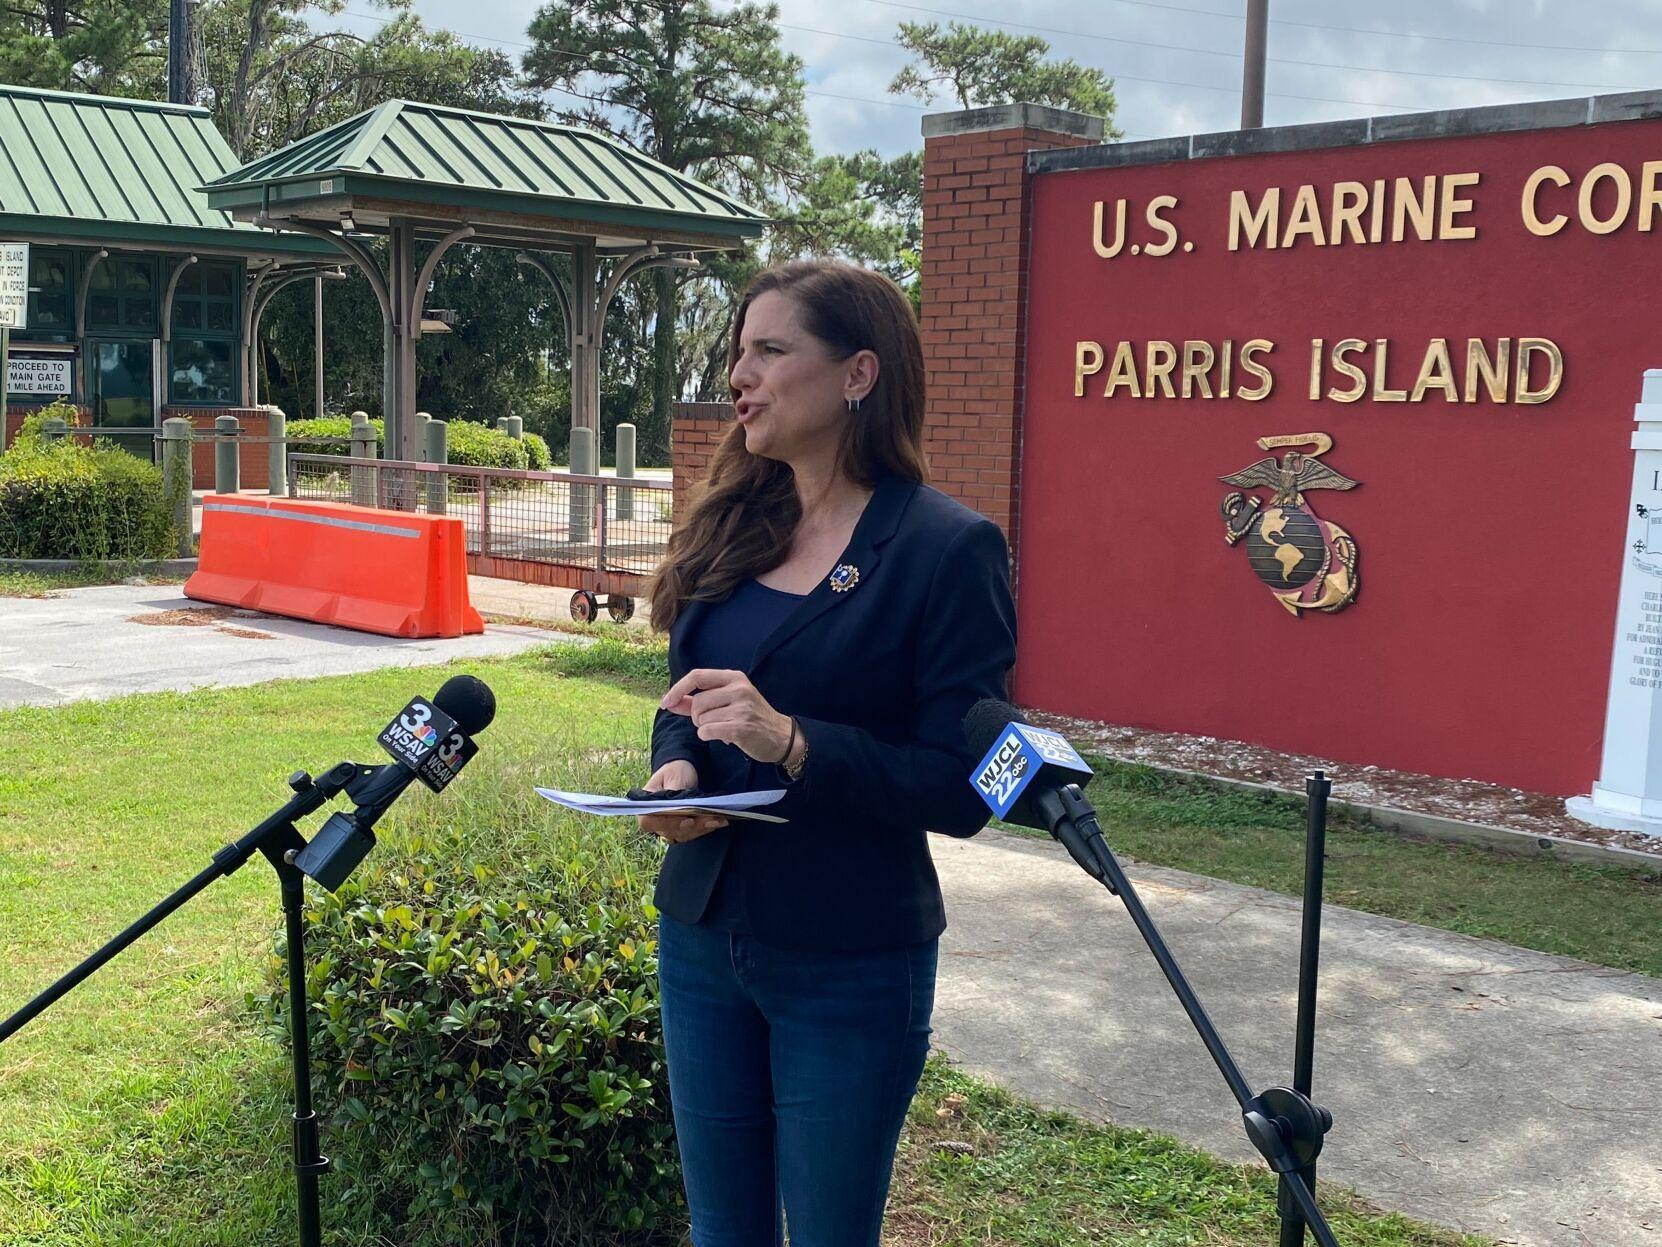 POST AND COURIER – Former Marine Corps officials ask for Mace's Parris Island claims to be 'toned down'